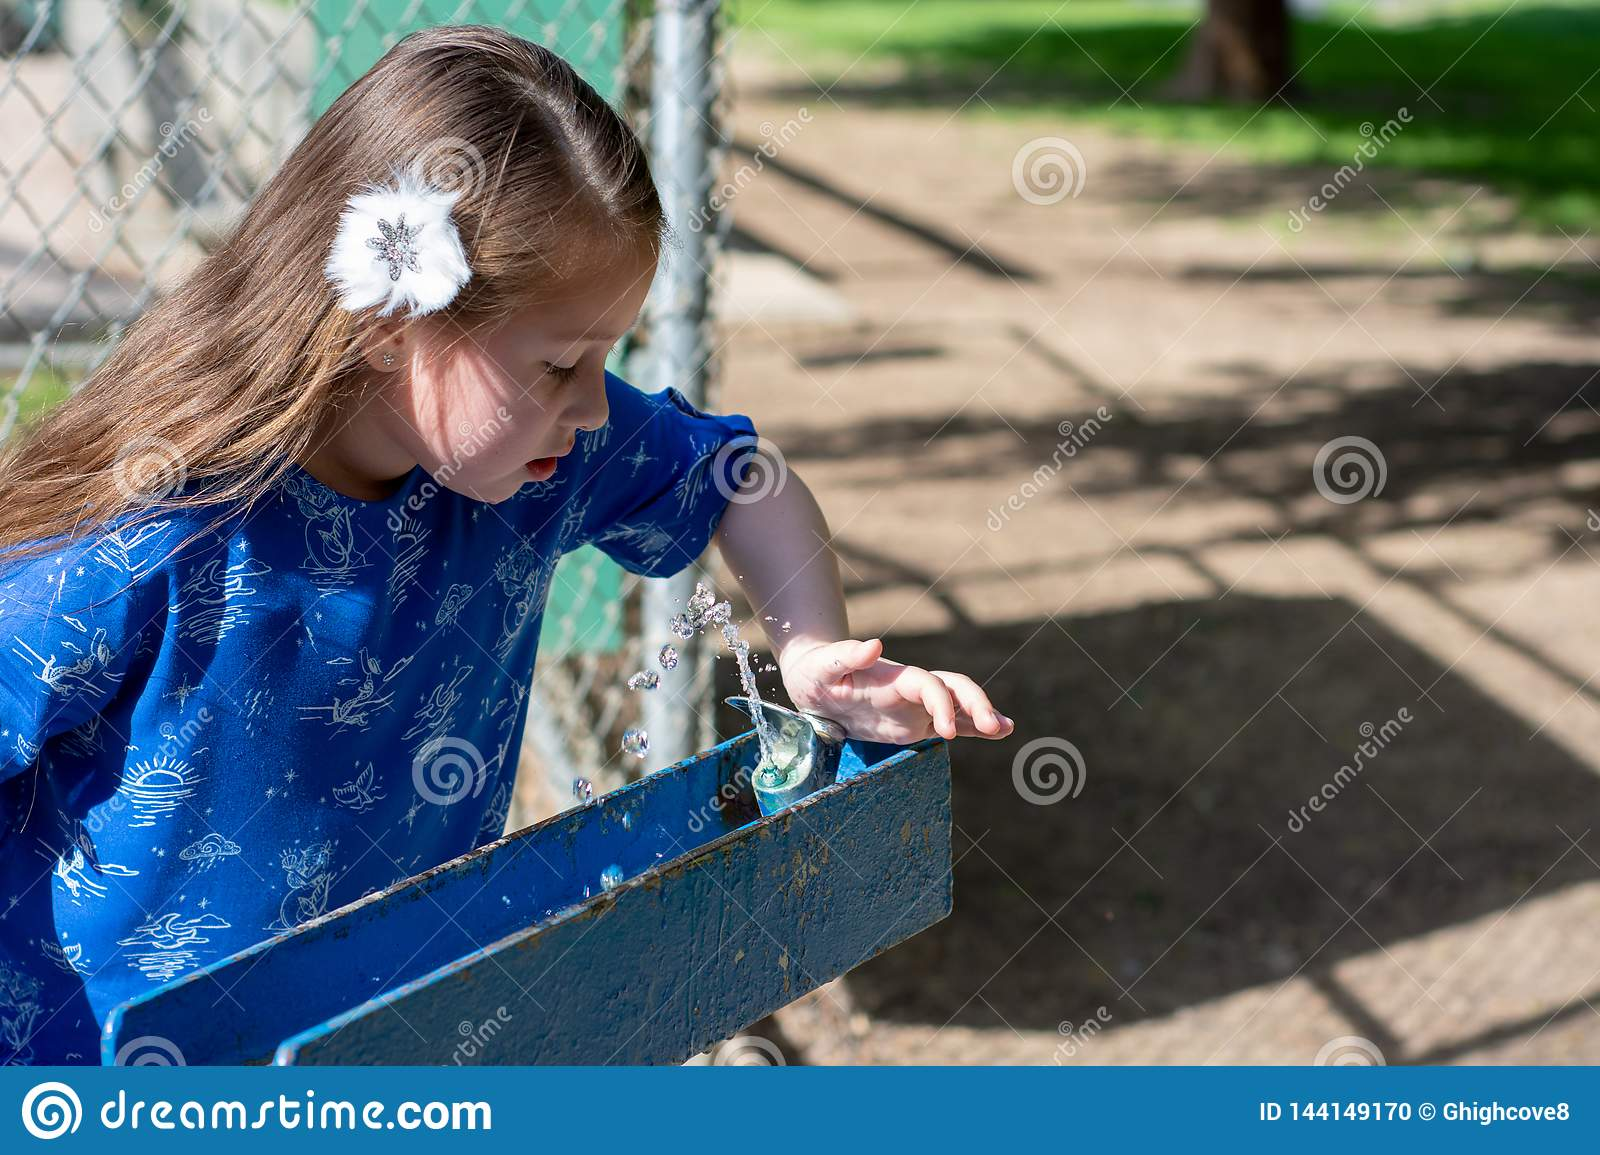 Little Girl in Blue Dress Using Drinking Fountain